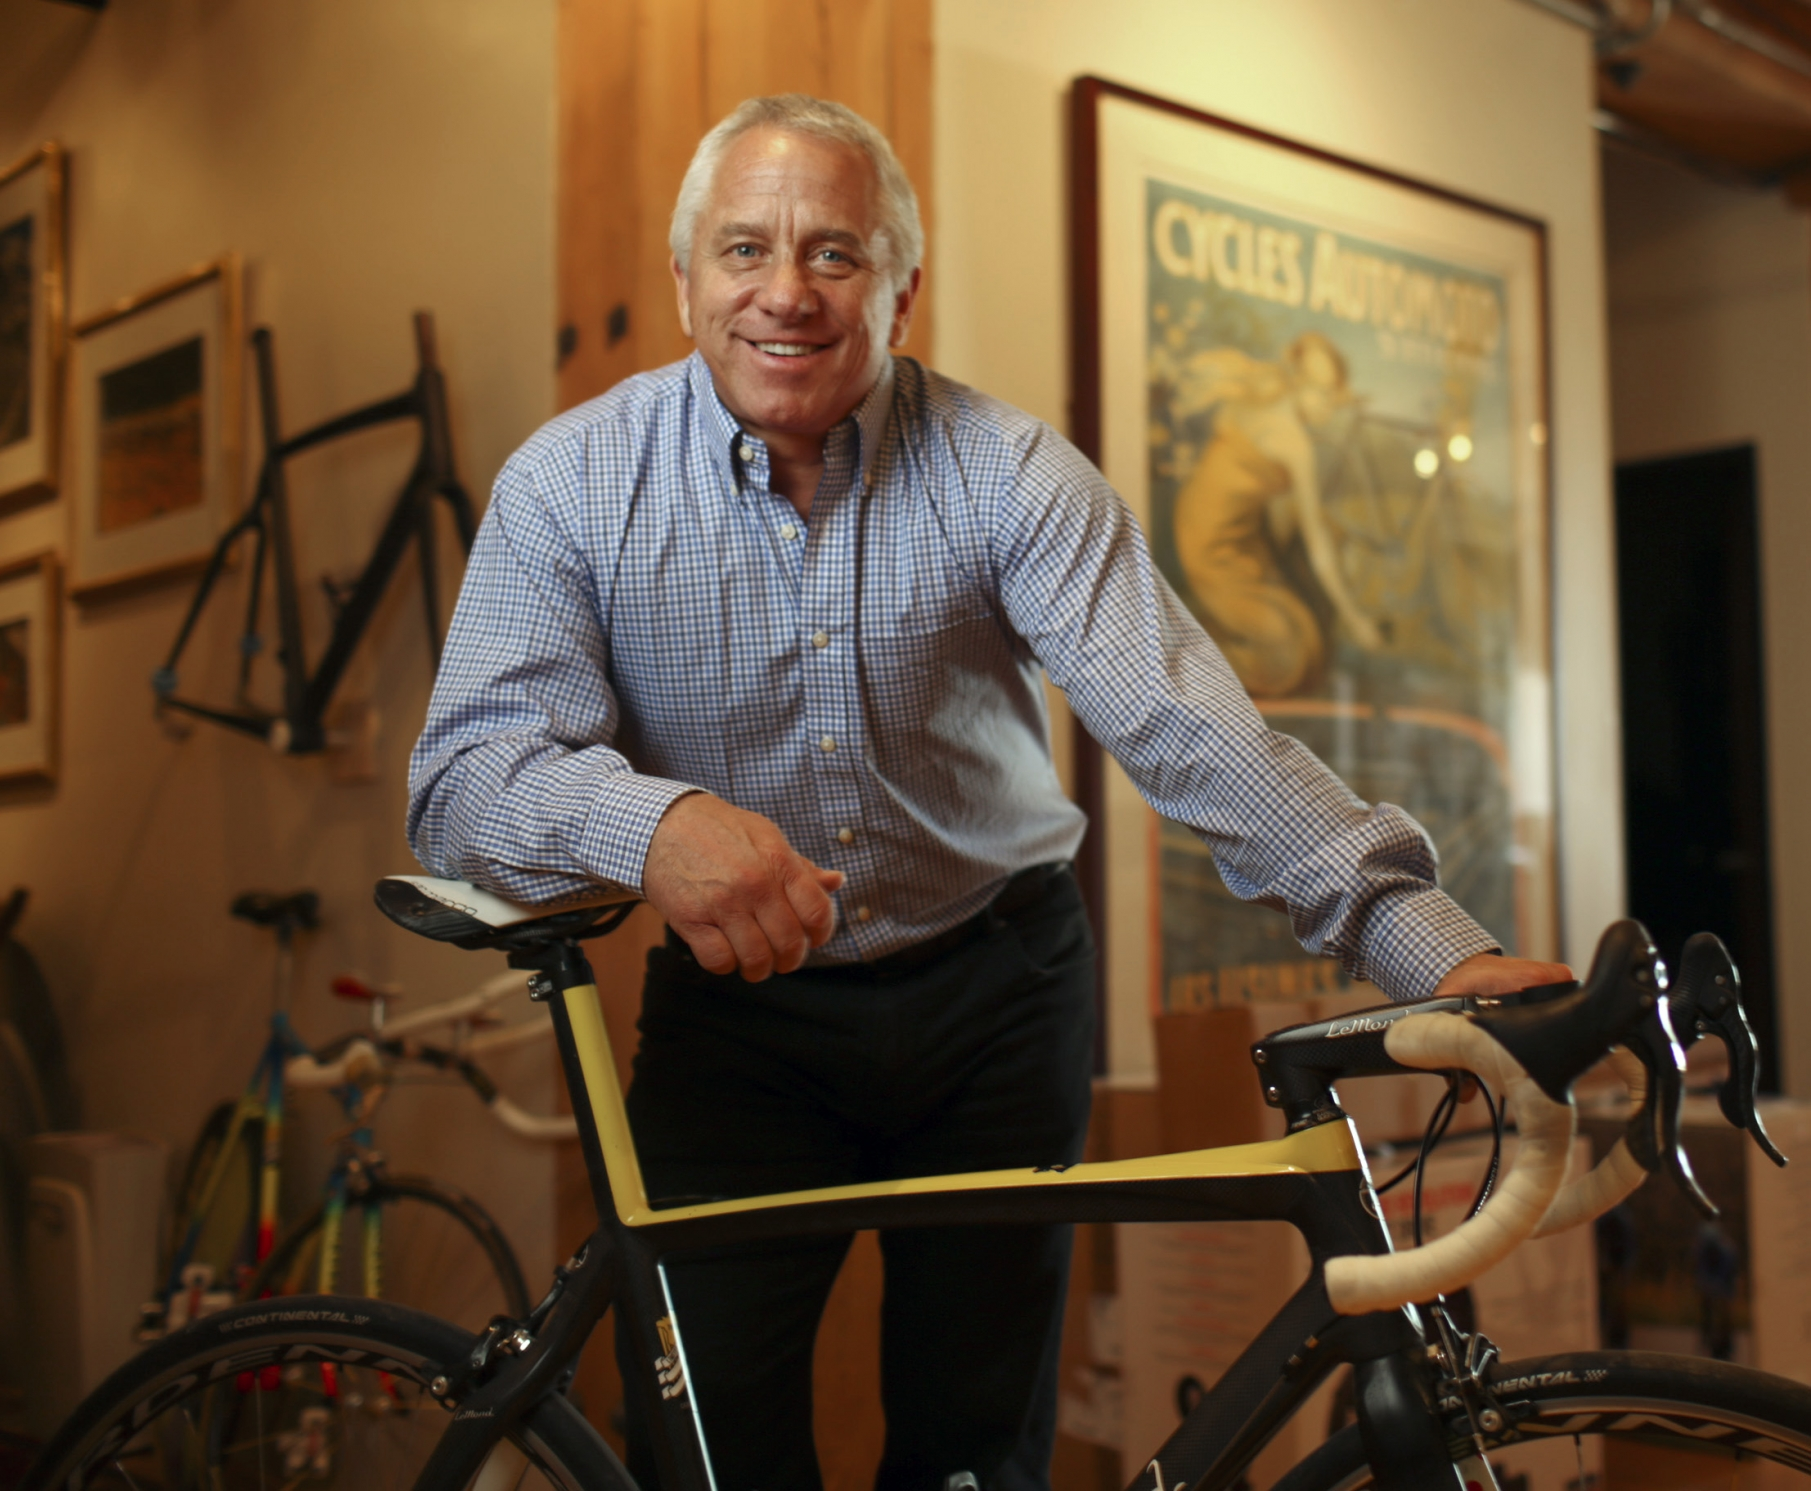 Greg LeMond won three Tour de France titles